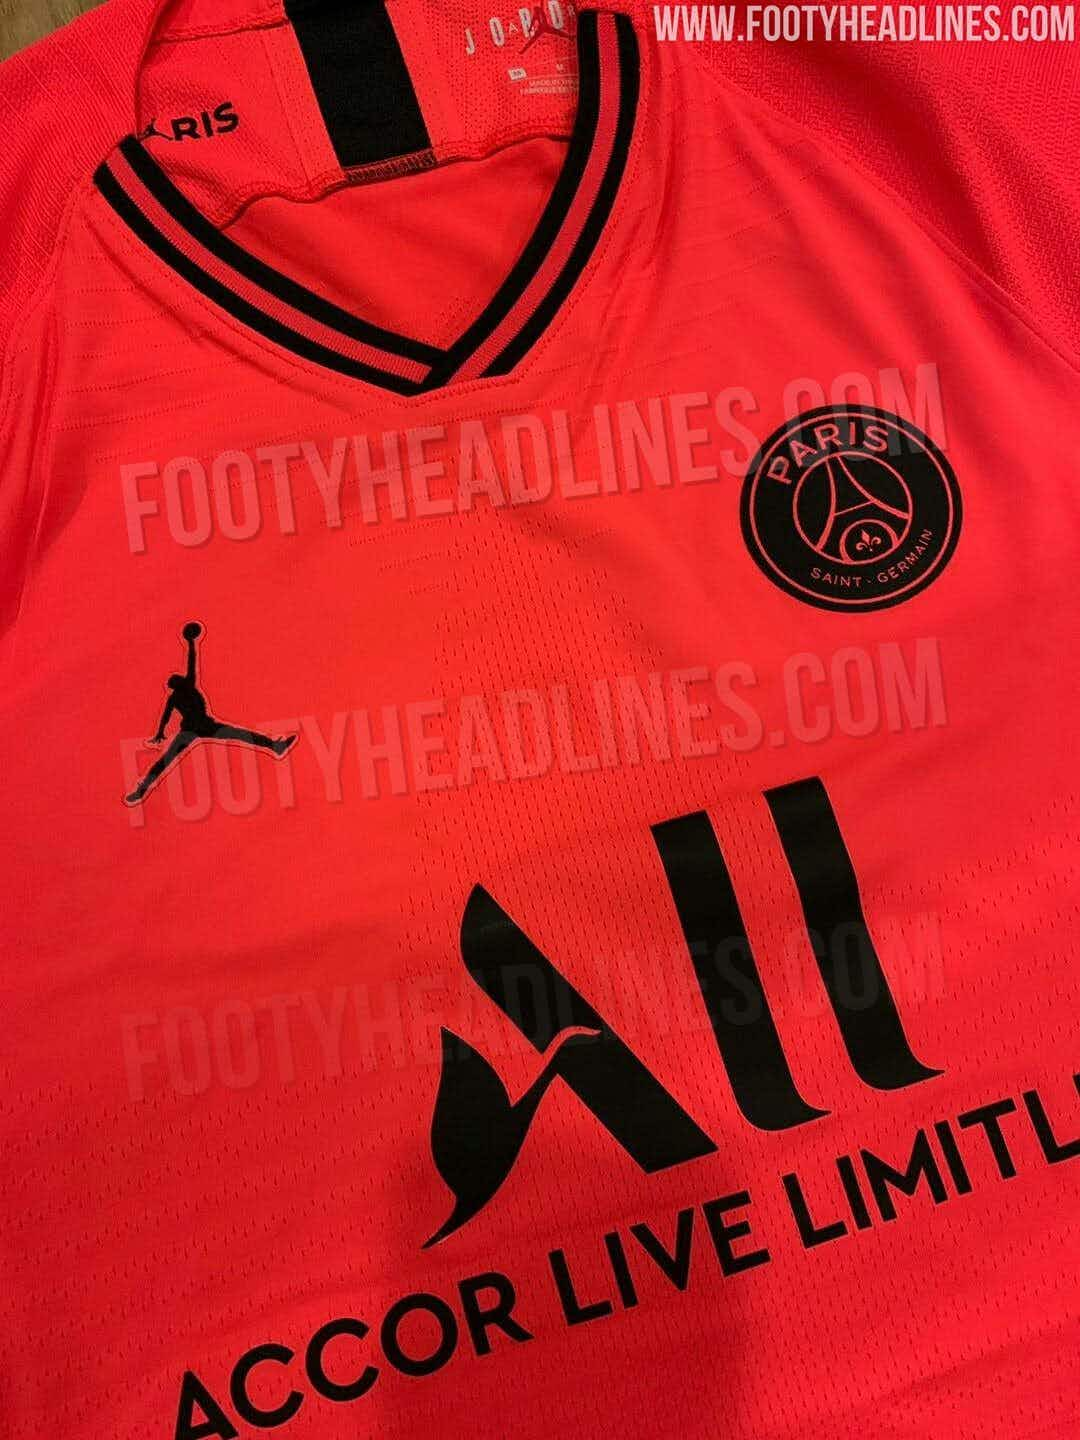 Psg S New Away Kit Is Certainly Eye Catching Onefootball